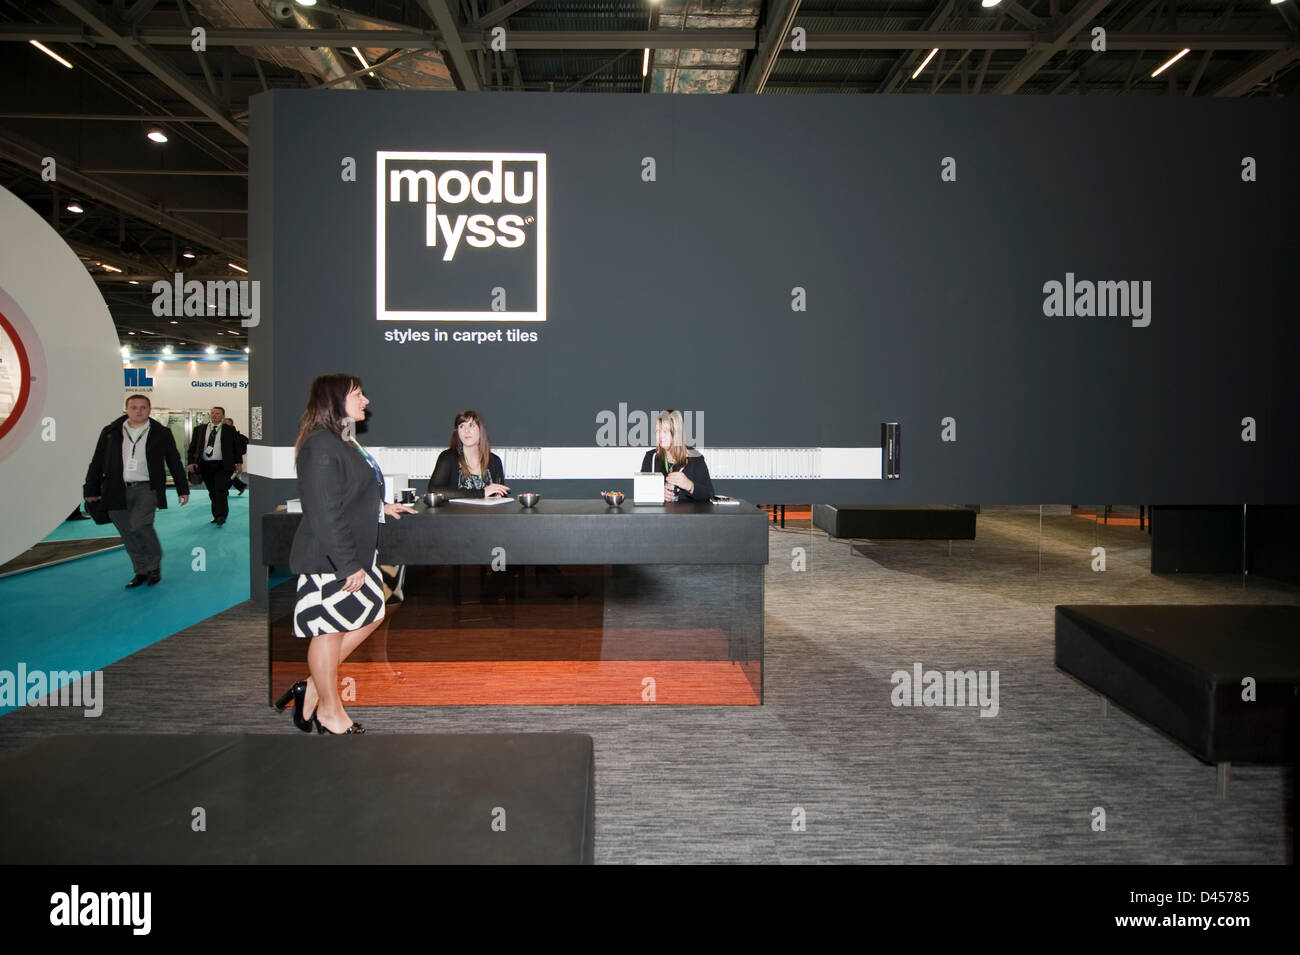 The Modulyss stand featuring carpet tiles at the largest showcase of sustainable construction products in the world opening for 3 days at Excel in London, ...